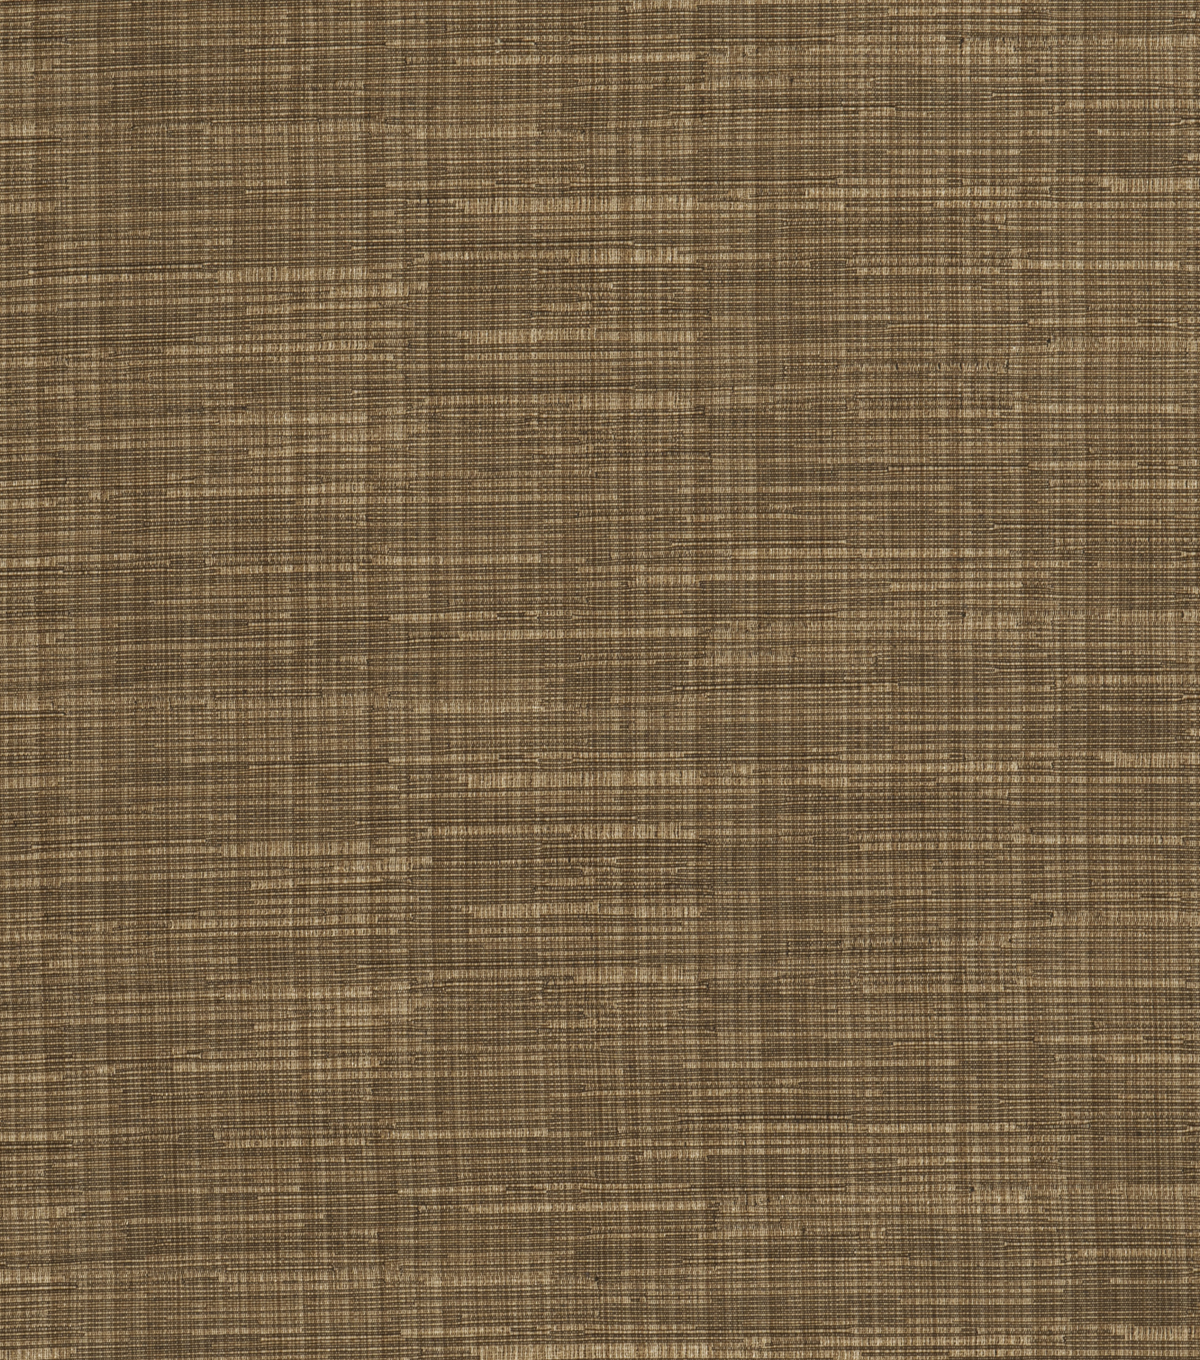 Home Decor 8x8 Fabric Swatch-Eaton Square Irony Mocha